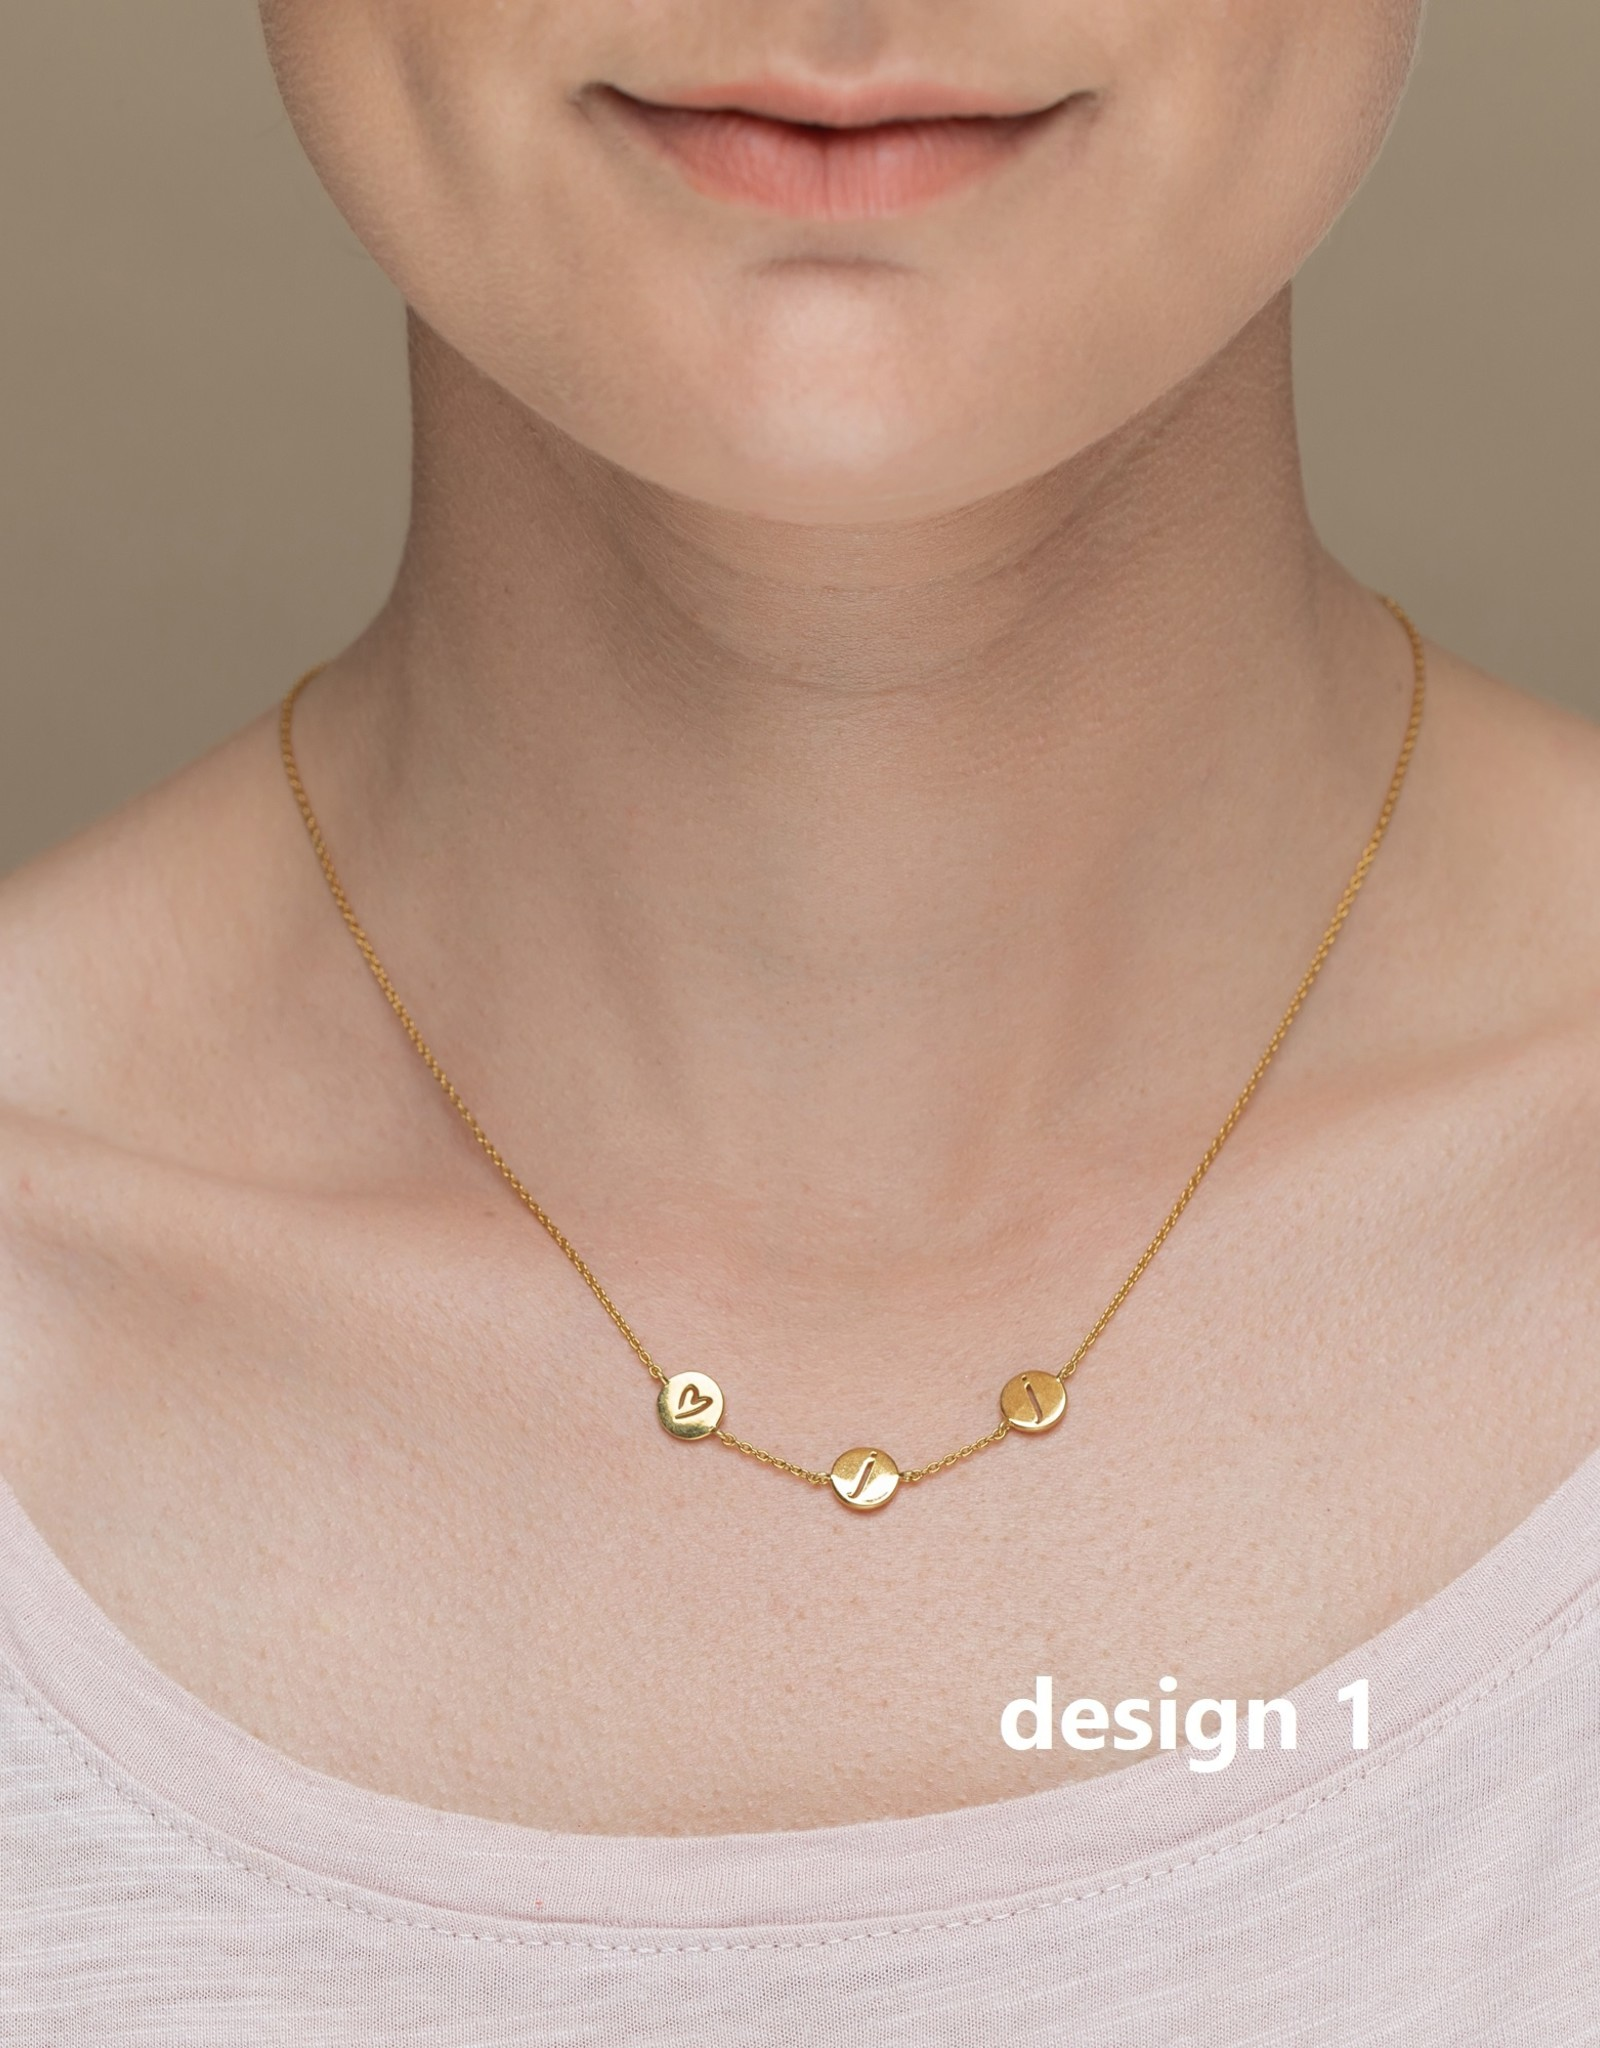 Design your necklace with 3 charms